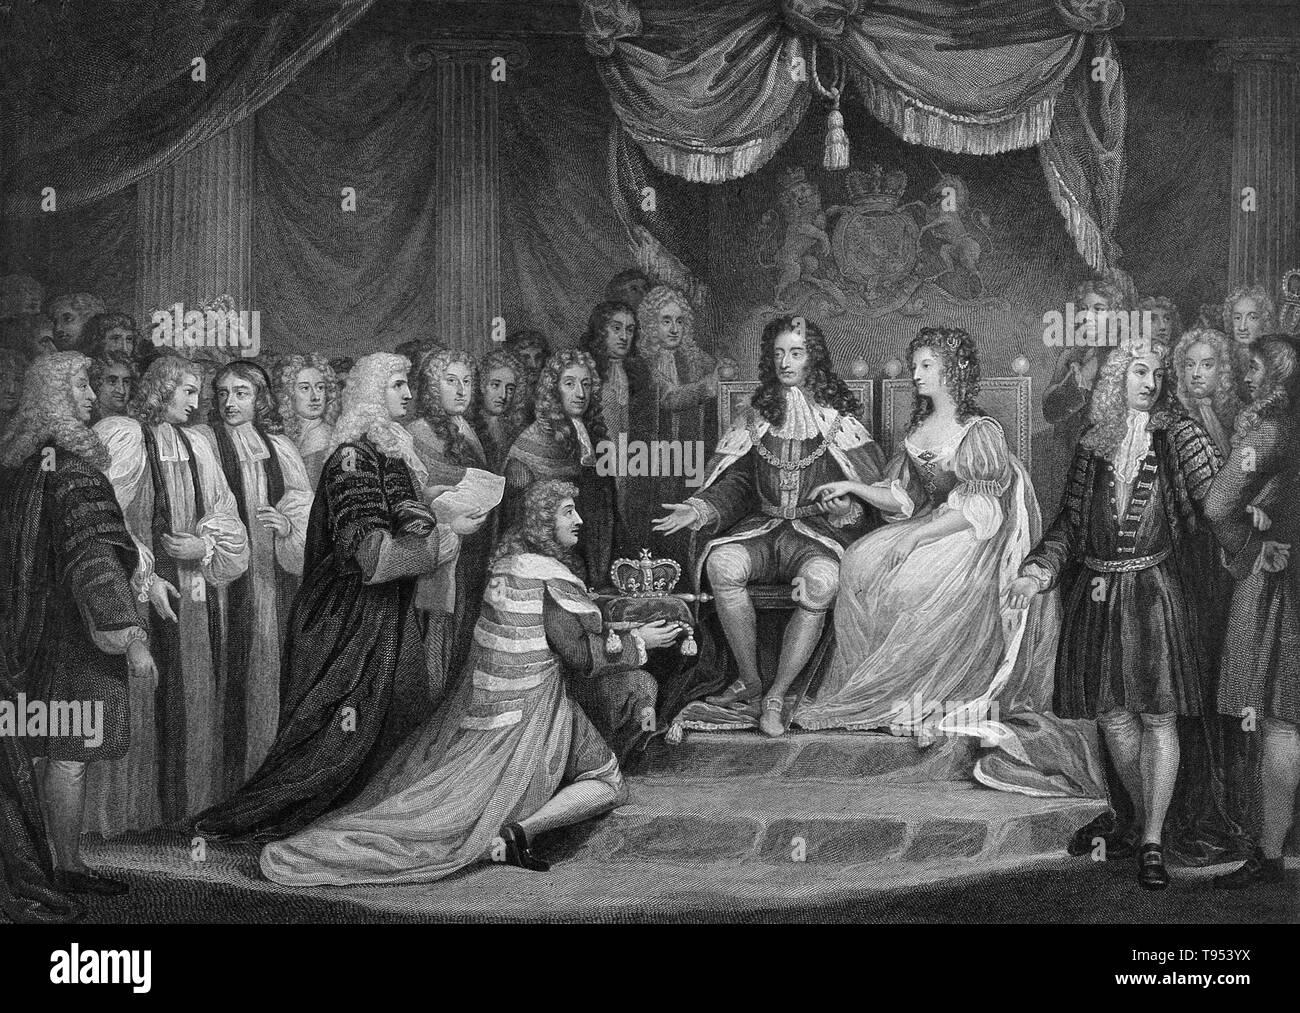 Entitled:  ''William of Orange, and Mary, his English wife are presented with the crown. William III & II (November 4, 1650 - March 8, 1702) was a sovereign Prince of Orange of the House of Orange-Nassau by birth. From 1689 he reigned as William III over England and Ireland. As King of Scotland, he is known as William II. In 1688 he invaded England in an action that ultimately deposed King James II & VII and won him the crowns of England, Scotland and Ireland. - Stock Image